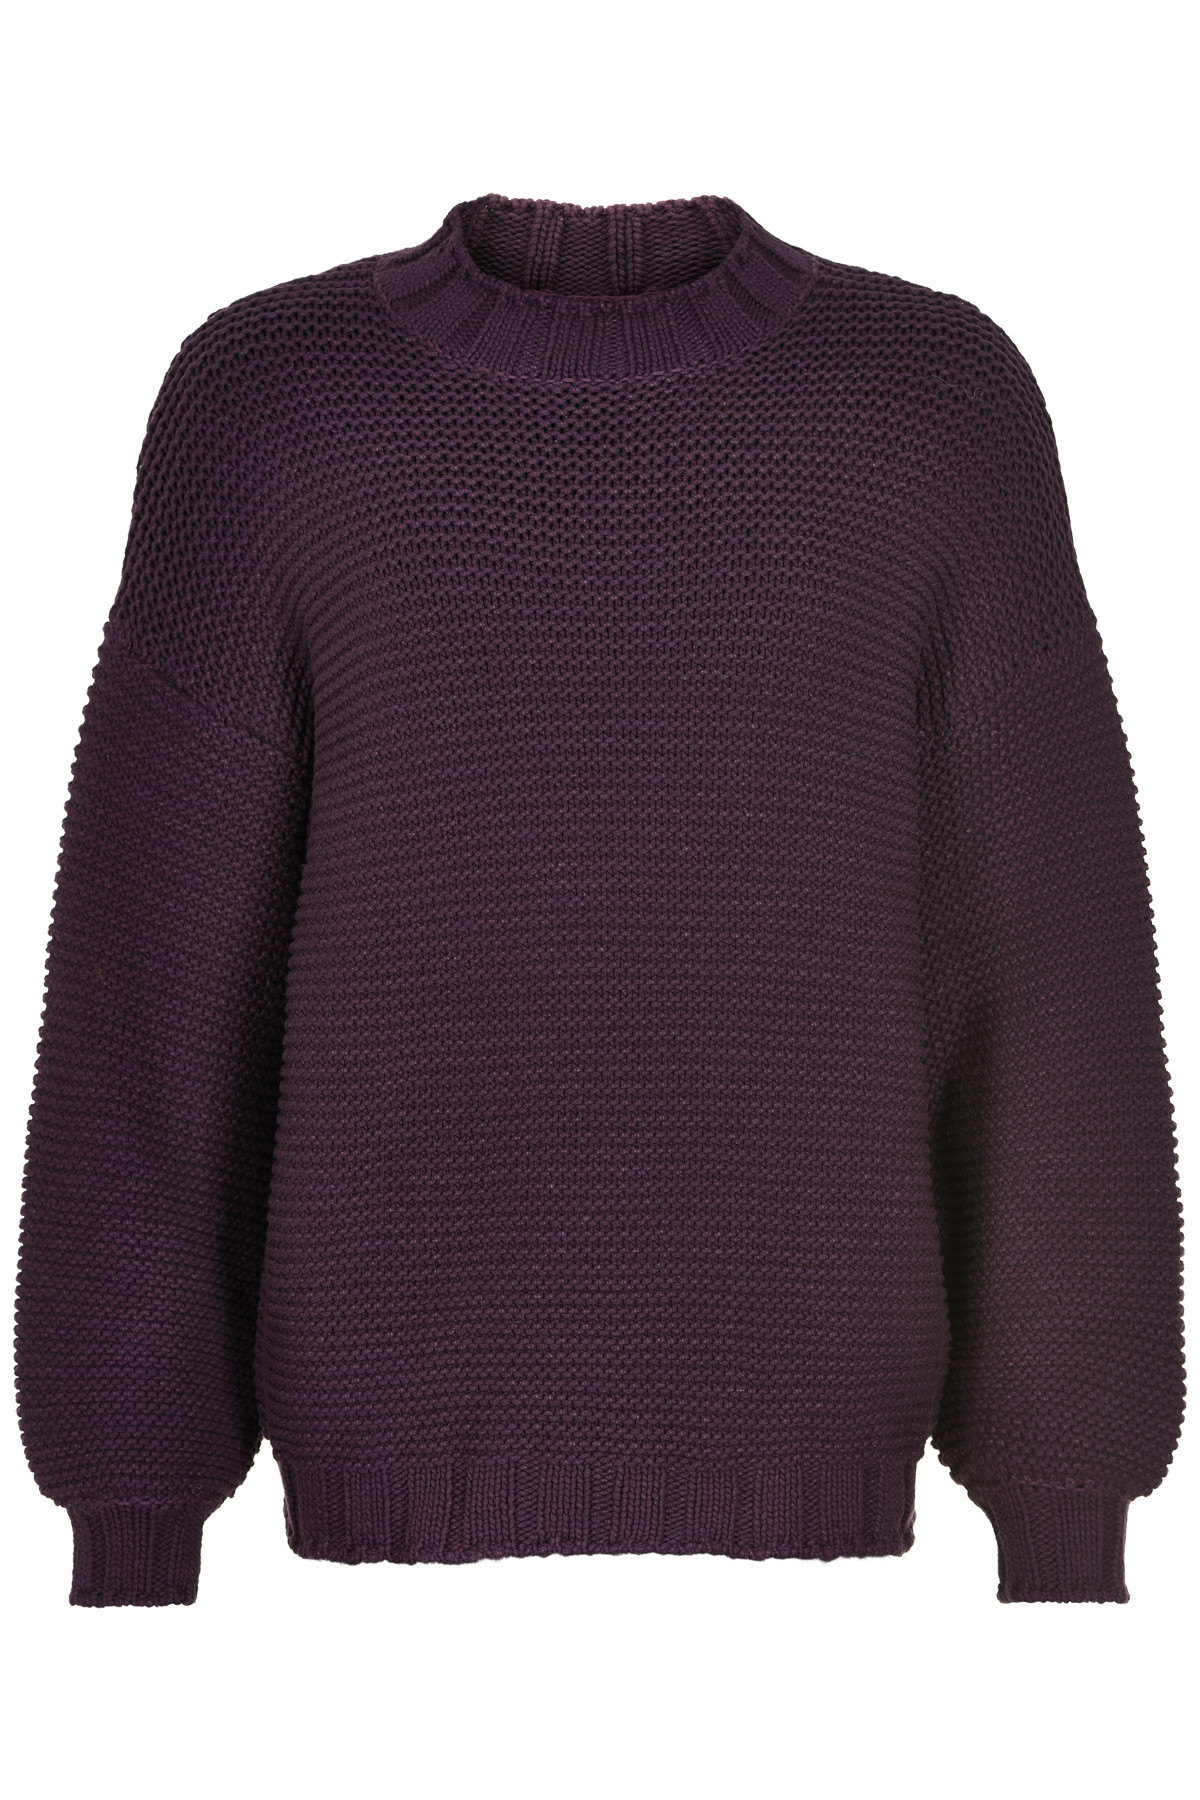 Image of   AND LESS NEW RAIMONDO PULLOVER 5419208 P (Plum Perfect, S)